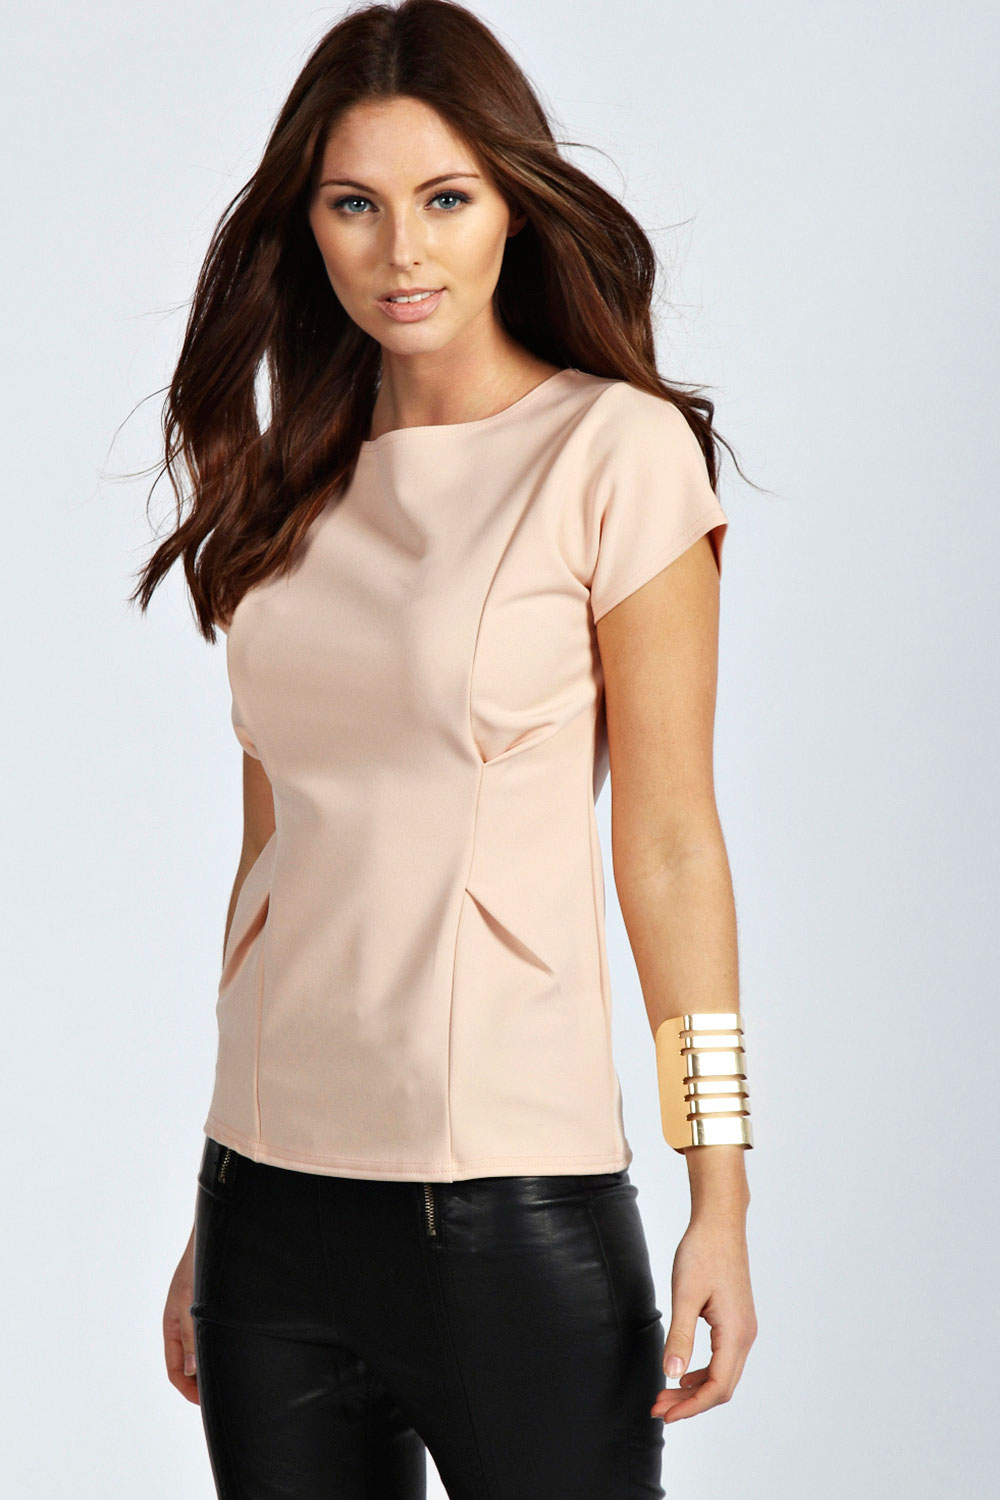 Shop for and buy shell tops online at Macy's. Find shell tops at Macy's.